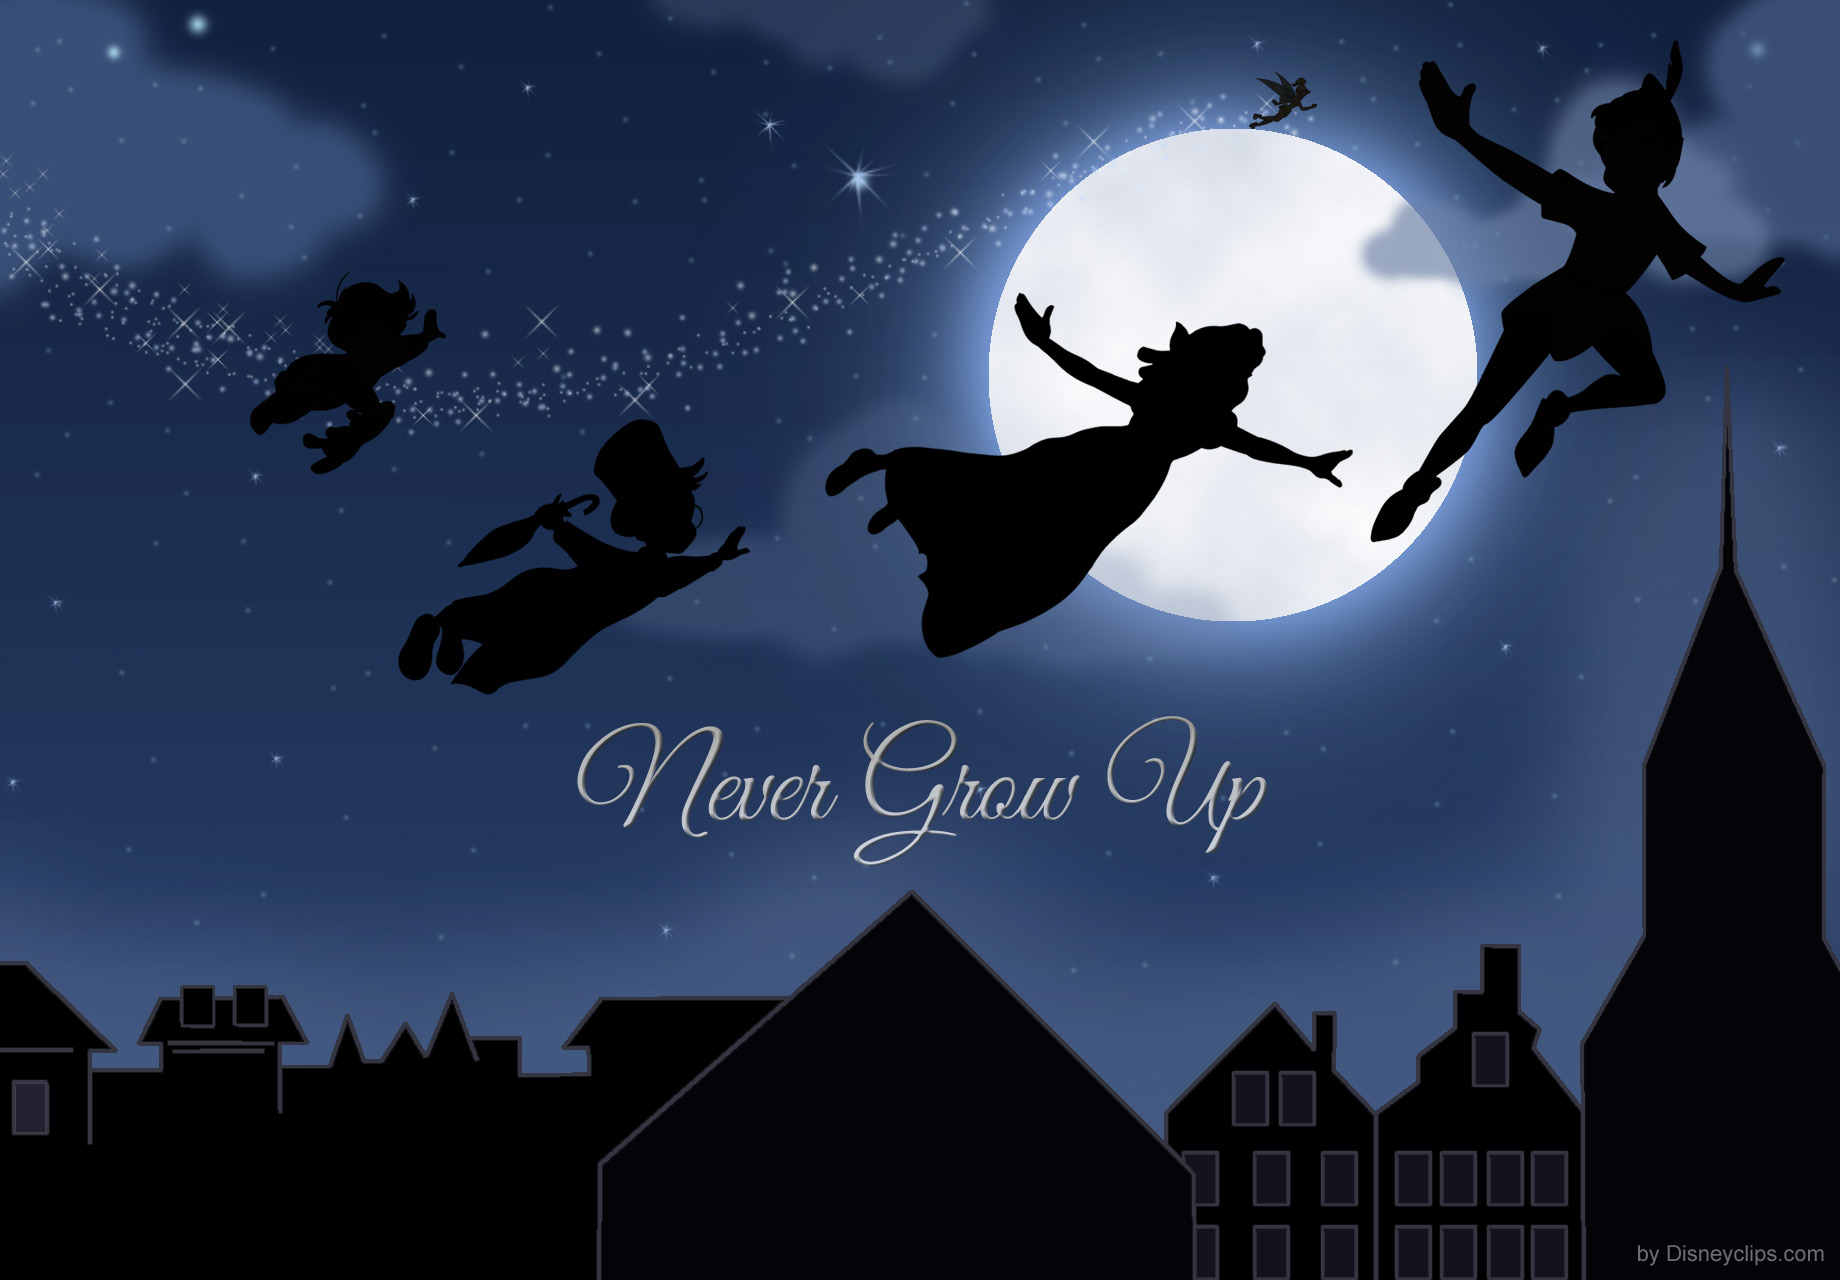 peter pan   tinker bell wallpaper disney freebies panda clipart black and white panda clipart free sad person